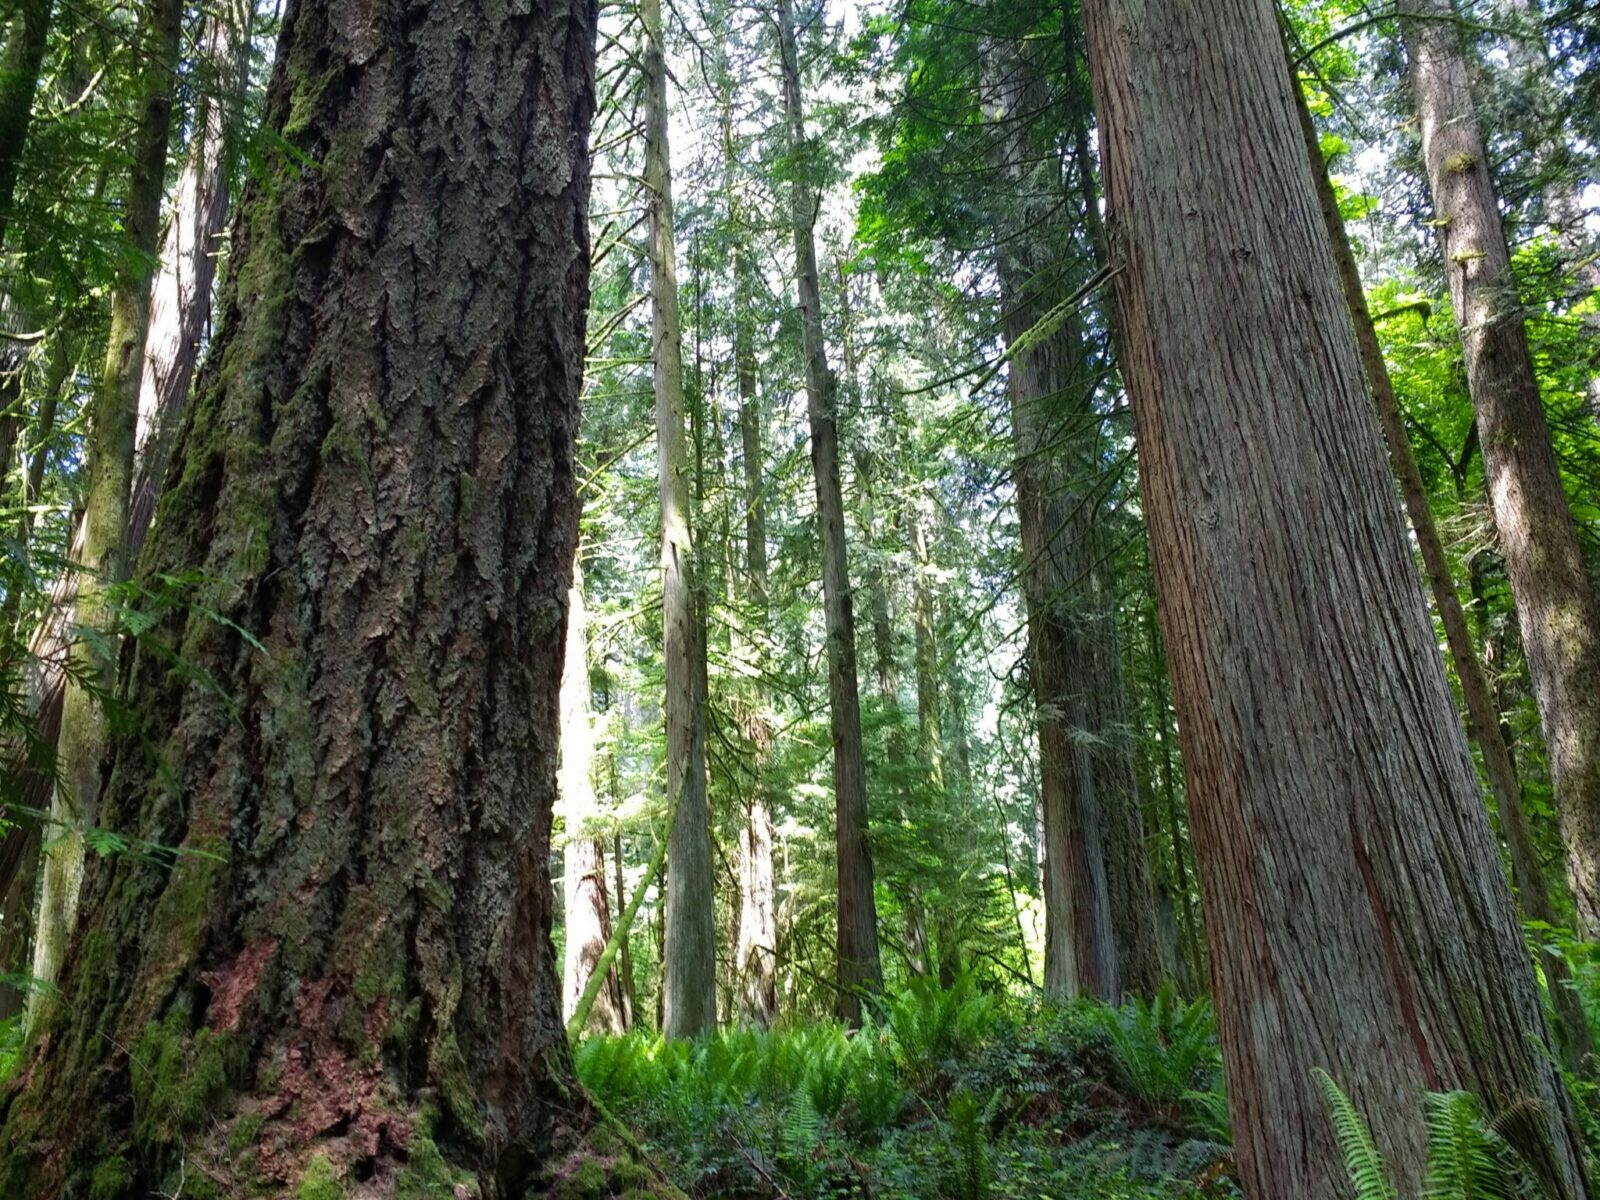 The bottom of tall old growth trees with chunky bark in a forest with more trees and a forest floor covered in ferns